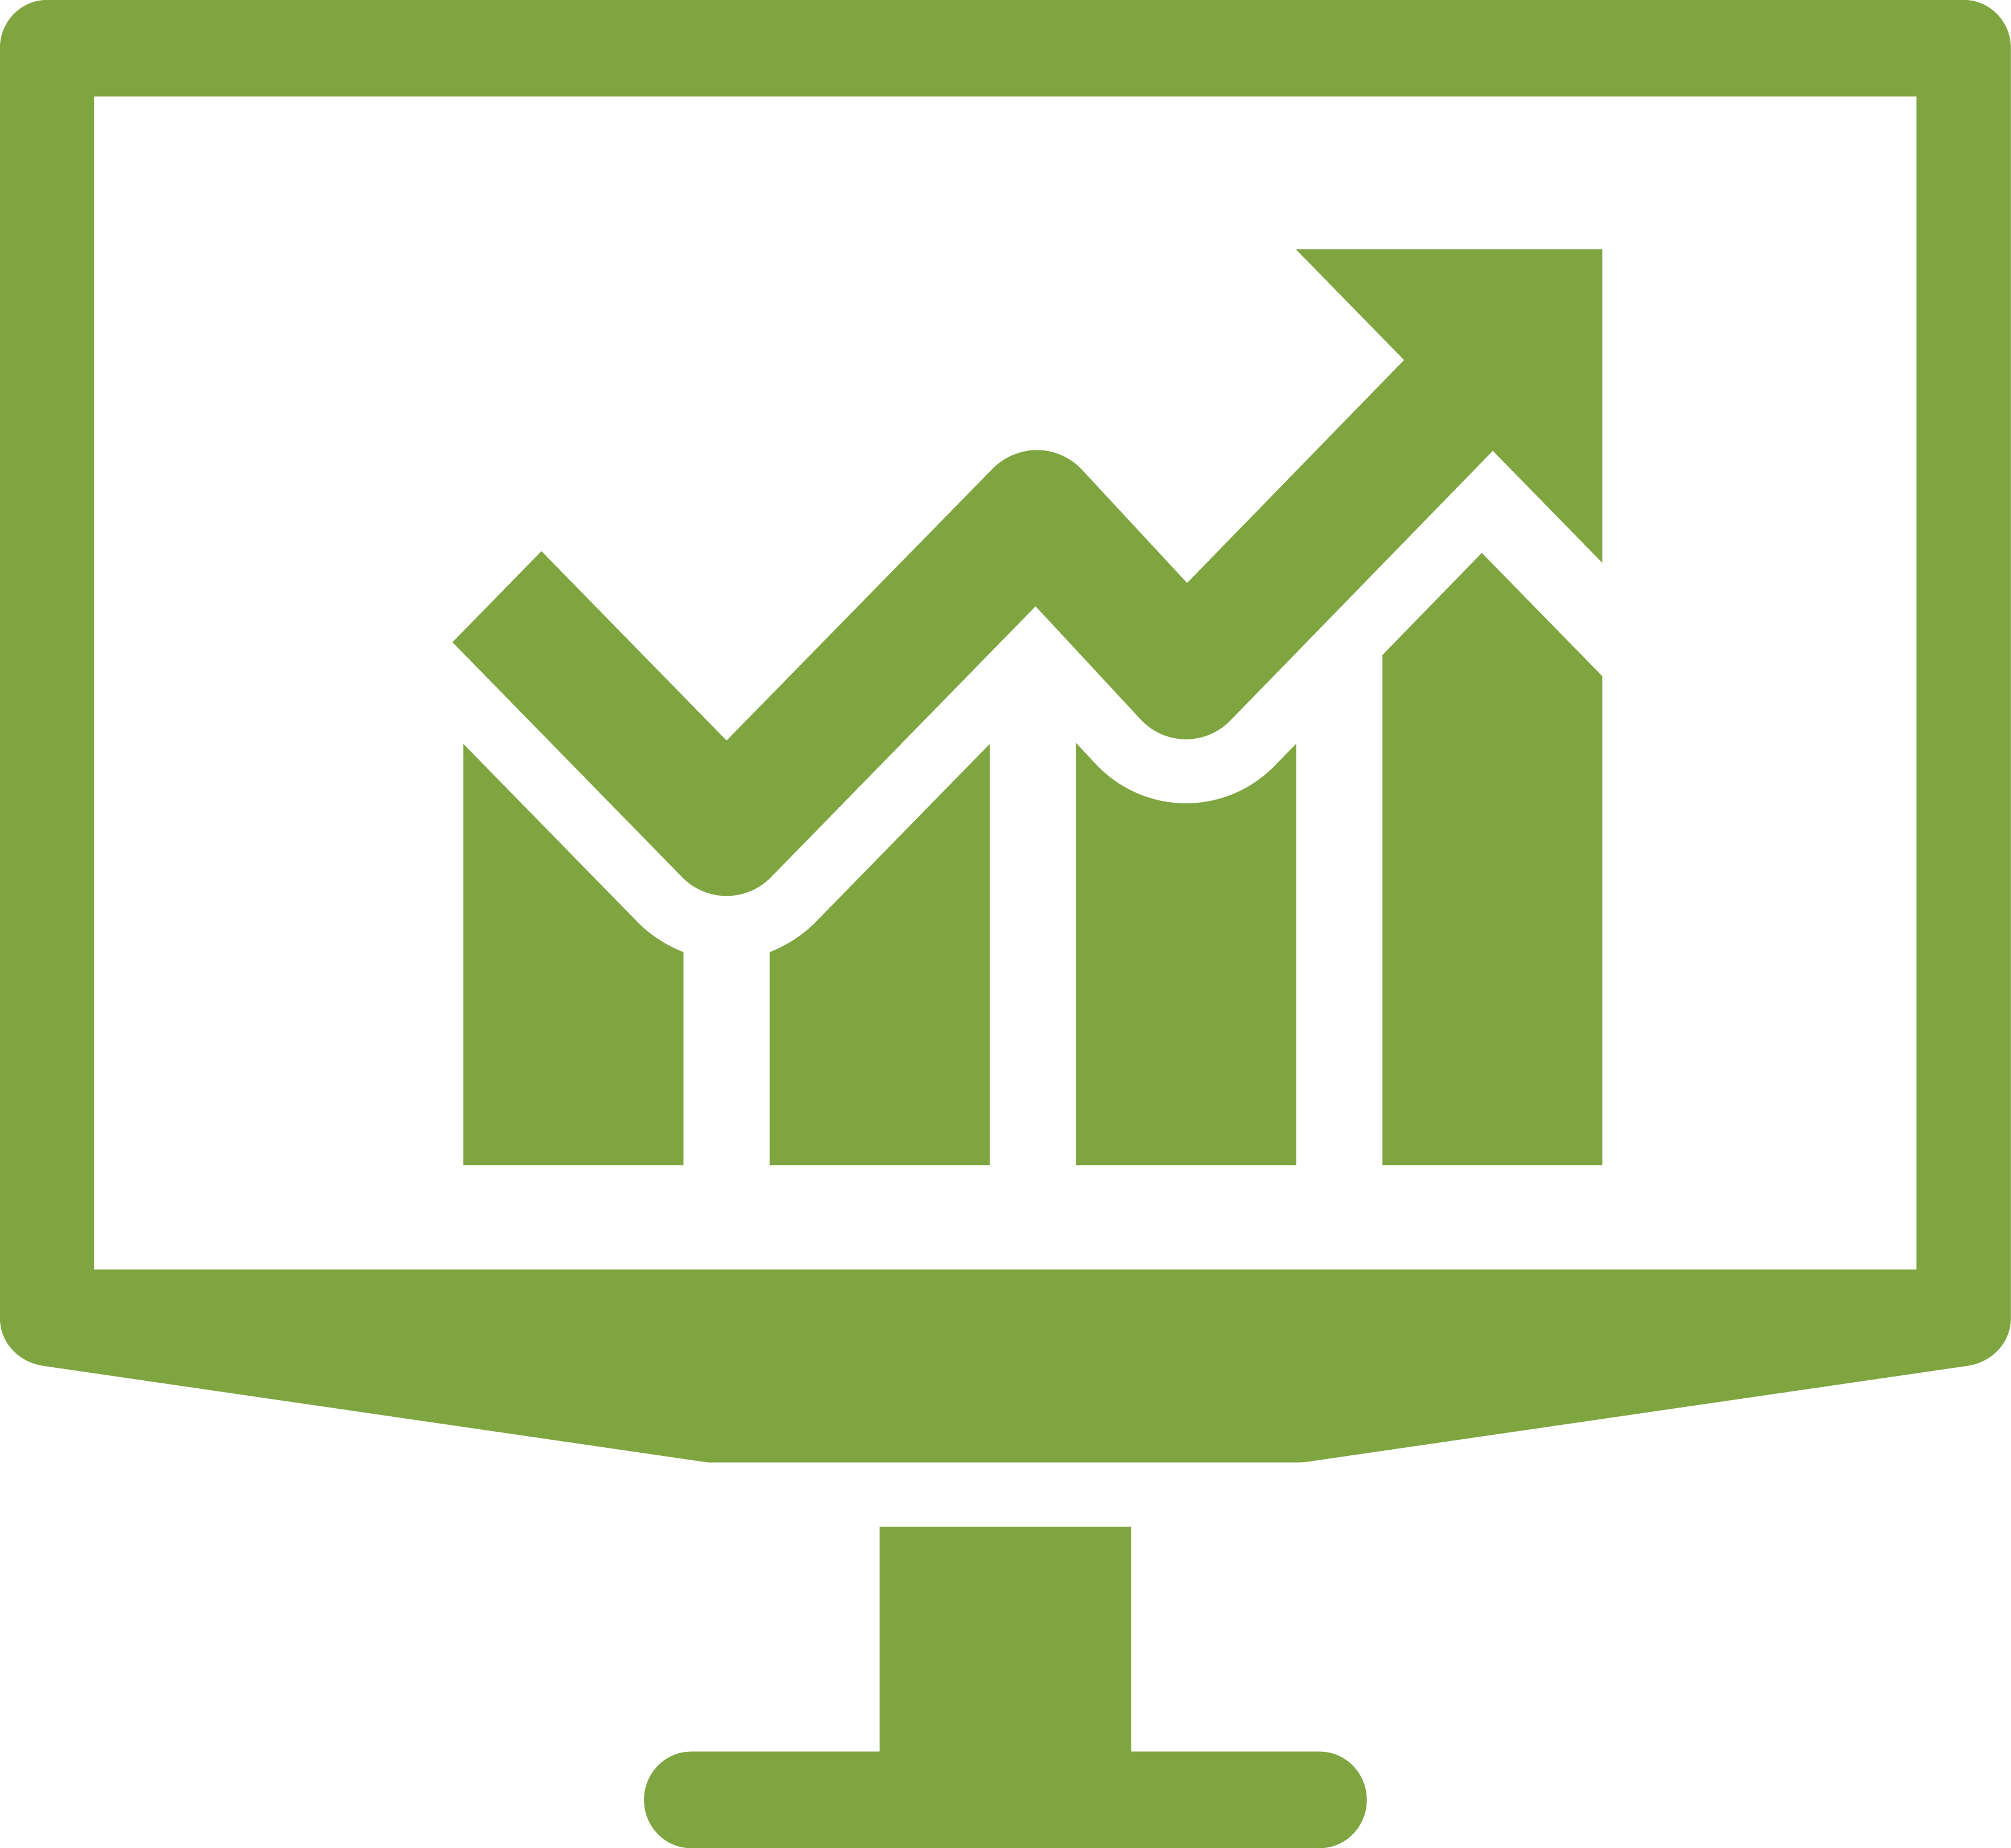 Computer icons chart analytics. Statistics clipart financial account